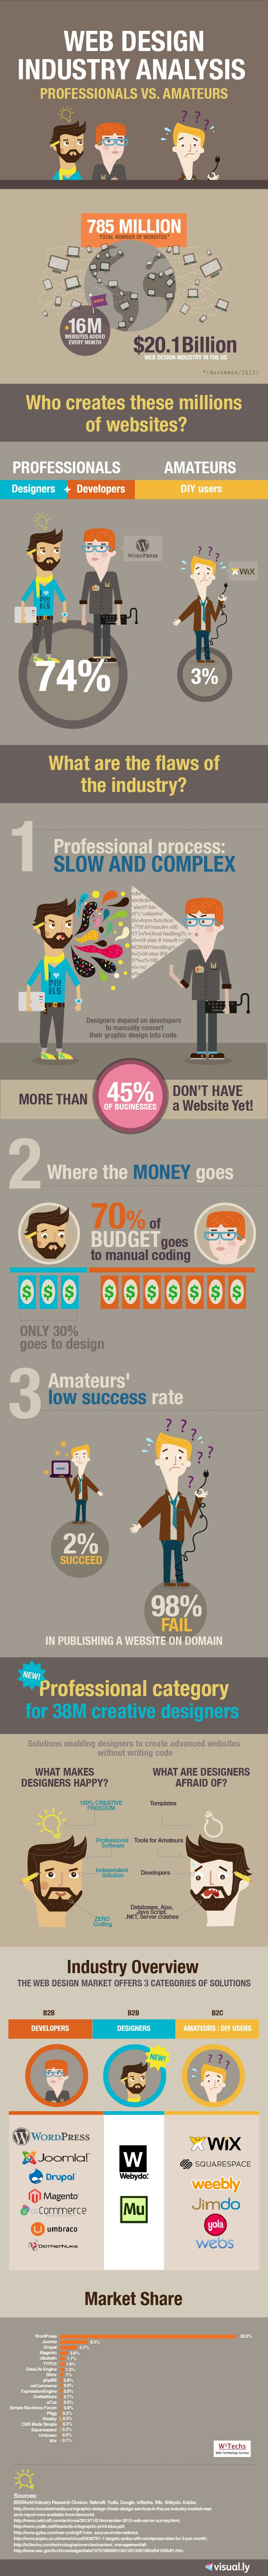 What is the future of the web design industry?  infographic design for Webydo.